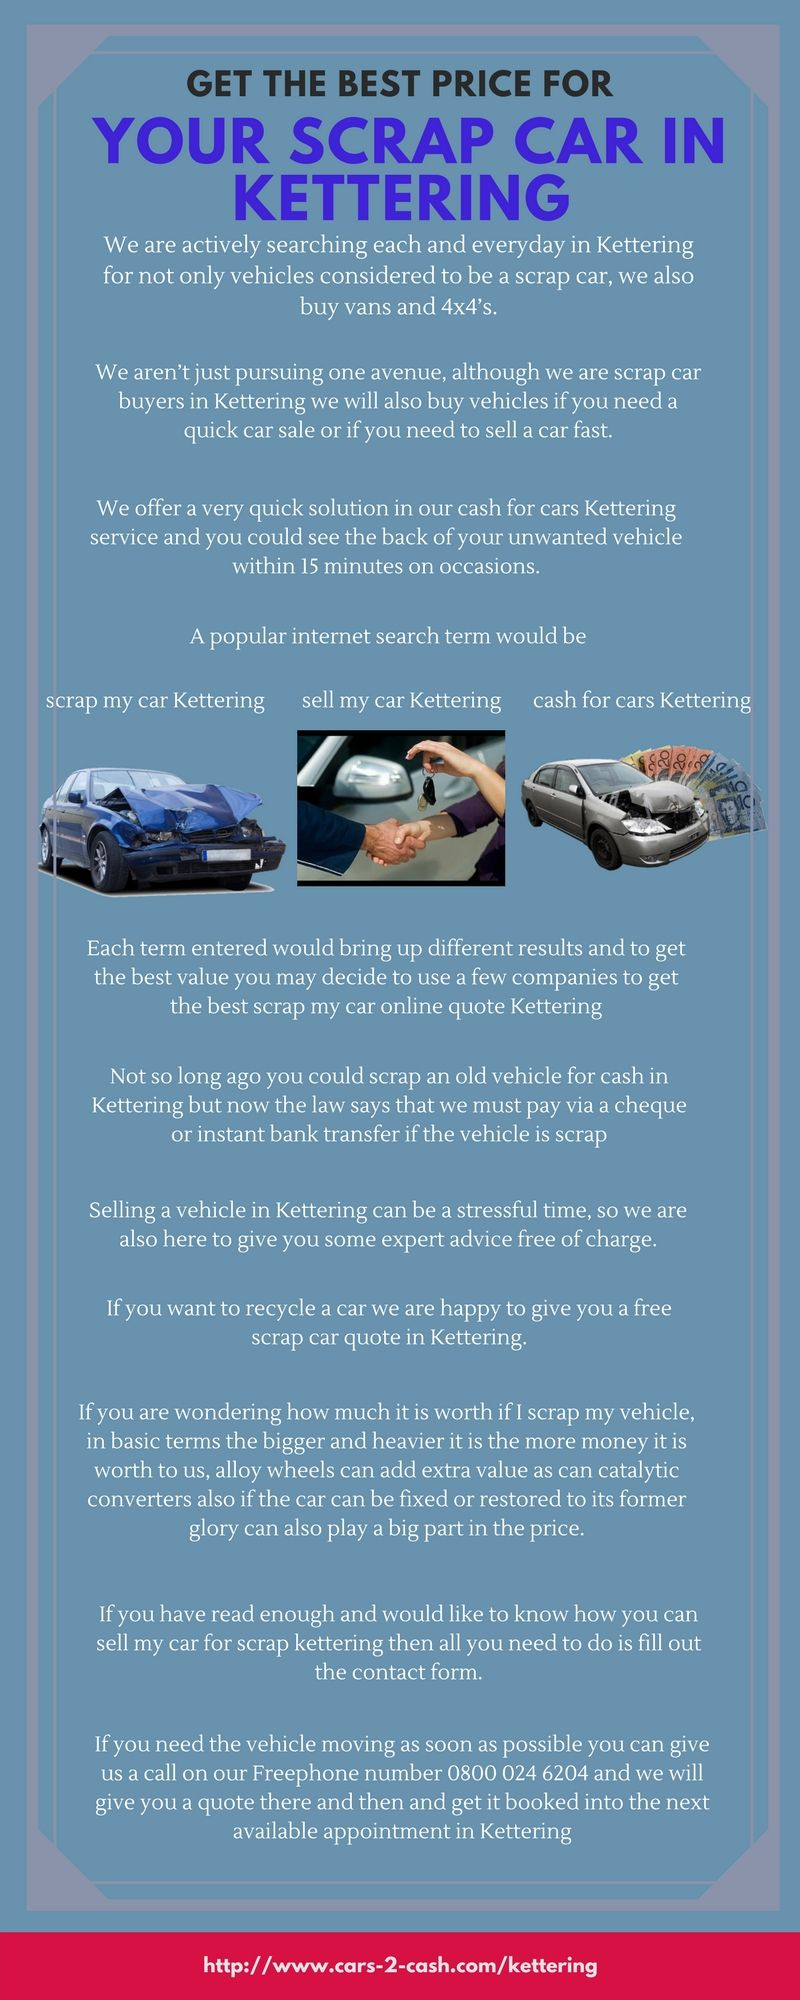 Cash For Cars Online Quote Selling A Vehicle In Kettering Can Be A Stressful Time So We Are